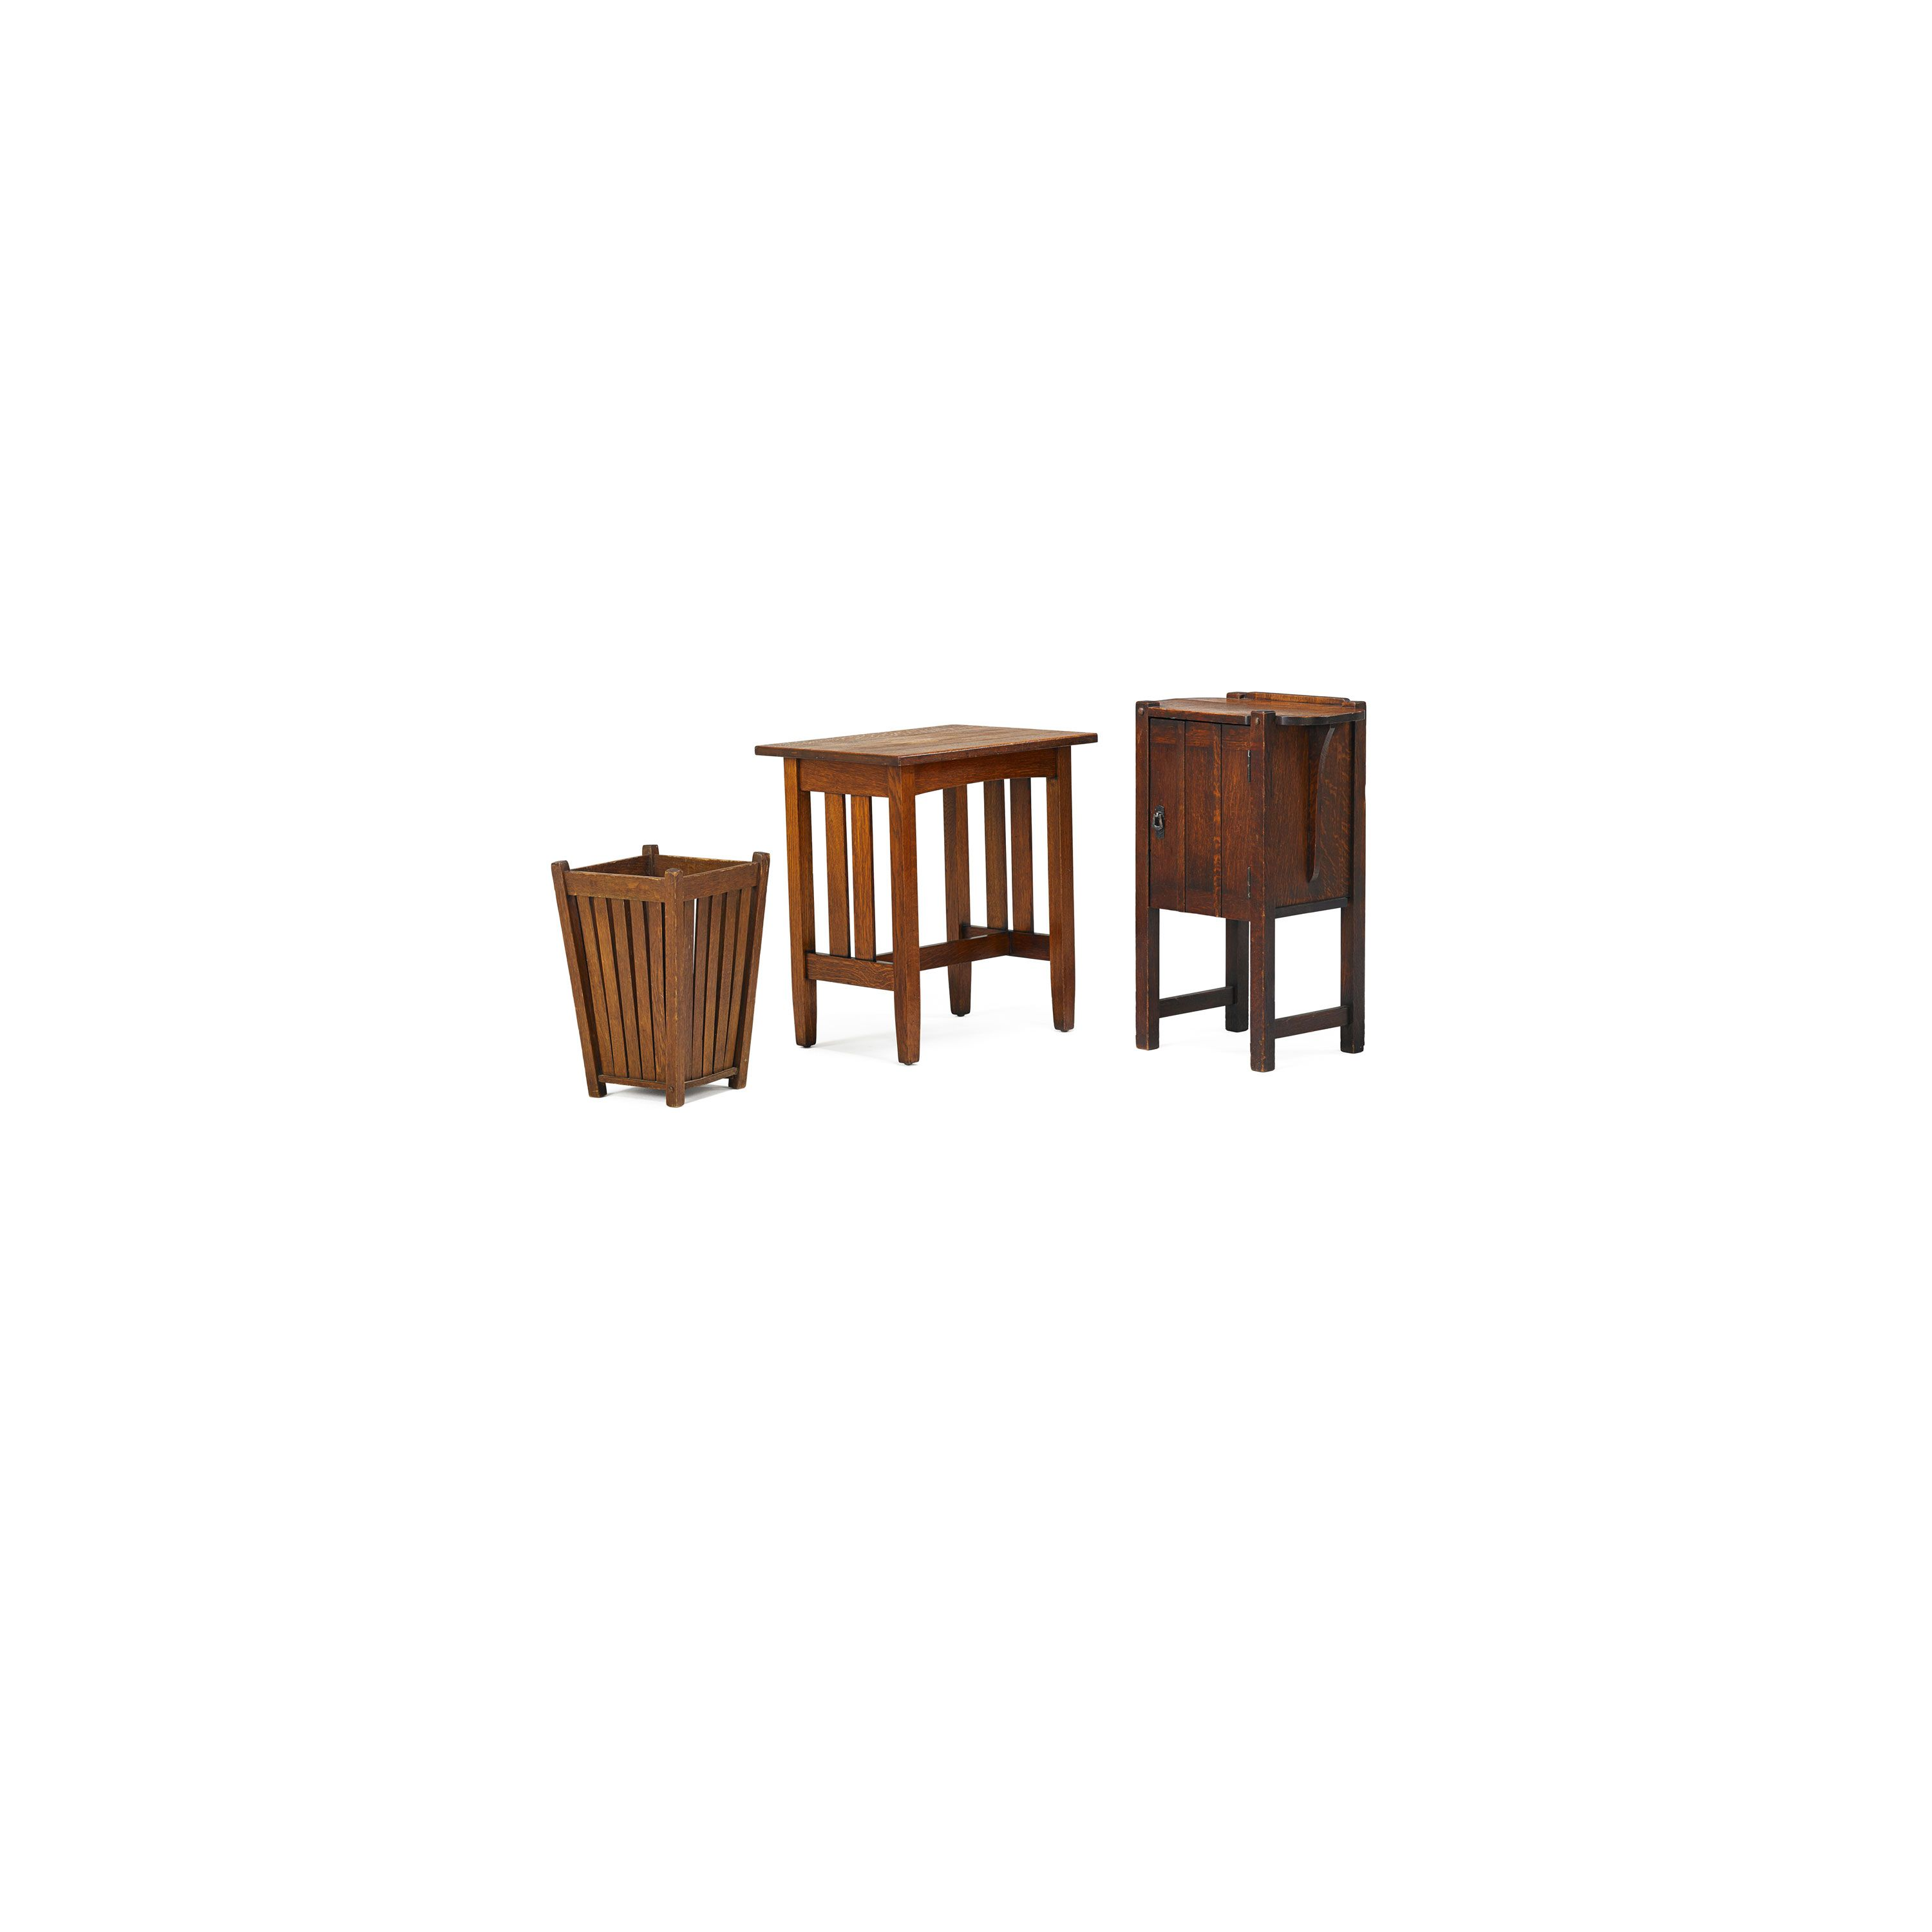 Stickley Brothers side table Arts & Crafts wastebasket and